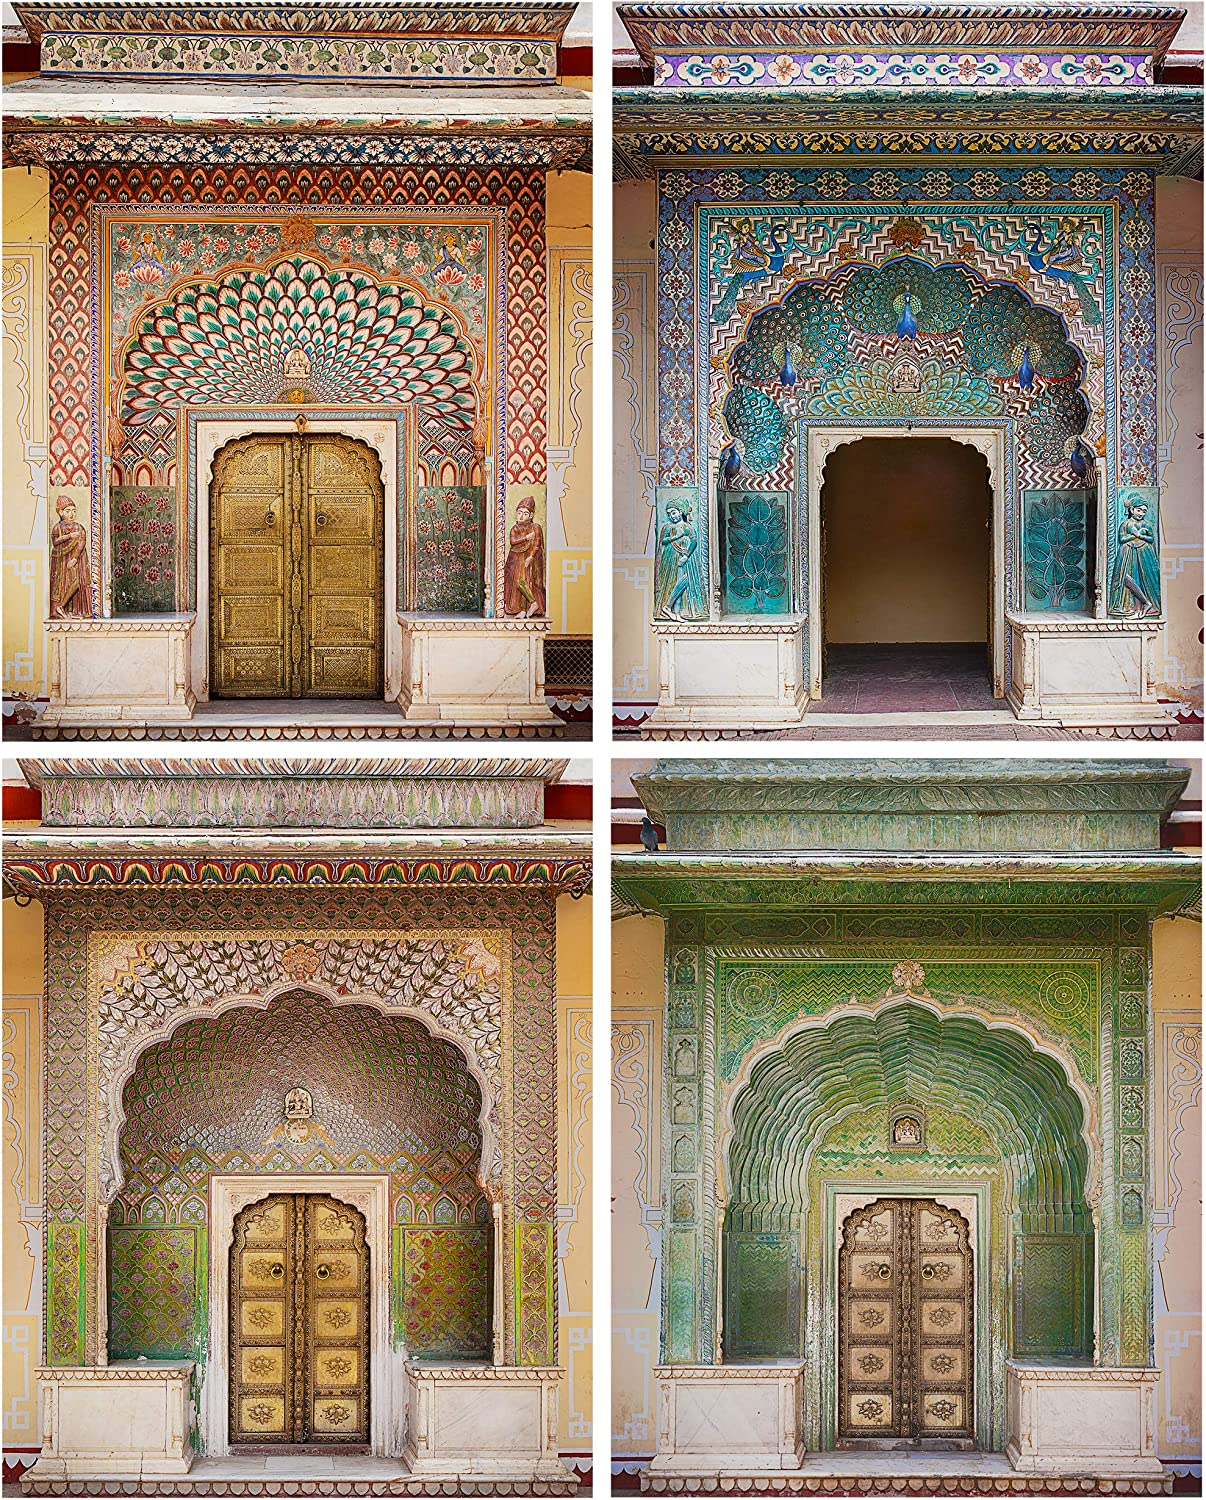 Azras Voyage Boho Wall Art Print (Set of 4, 8x10) - Bohemian Decor for Bedroom, Living Room, Walls - Moroccan Artwork, Indian Home Decor - Rustic, Unframed Pictures of Jaipur Palace Doors, Rajasthan